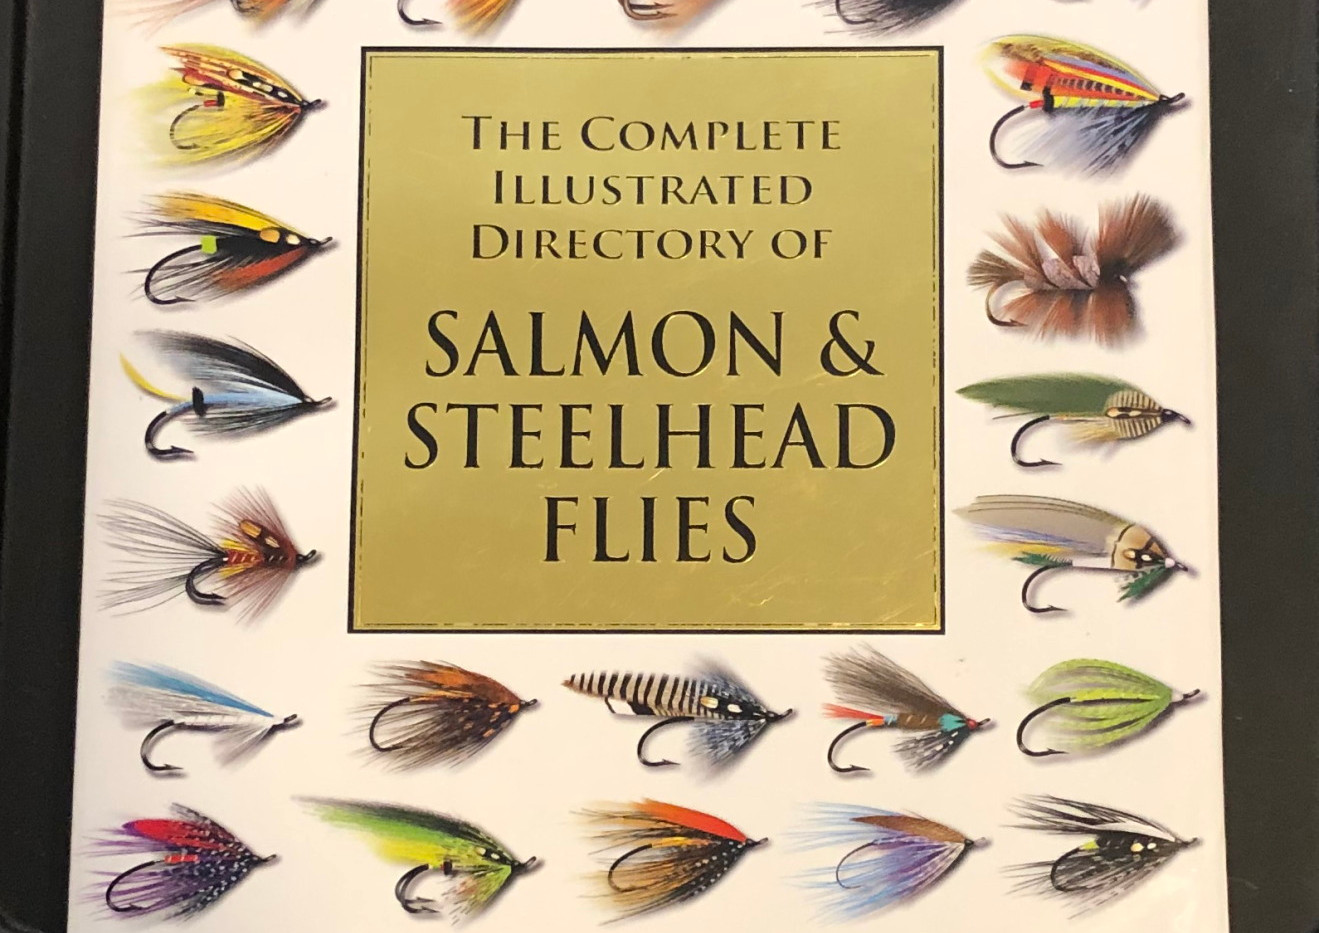 The Complete Illustrated Dictionary of Salmon & Steelhead Flies